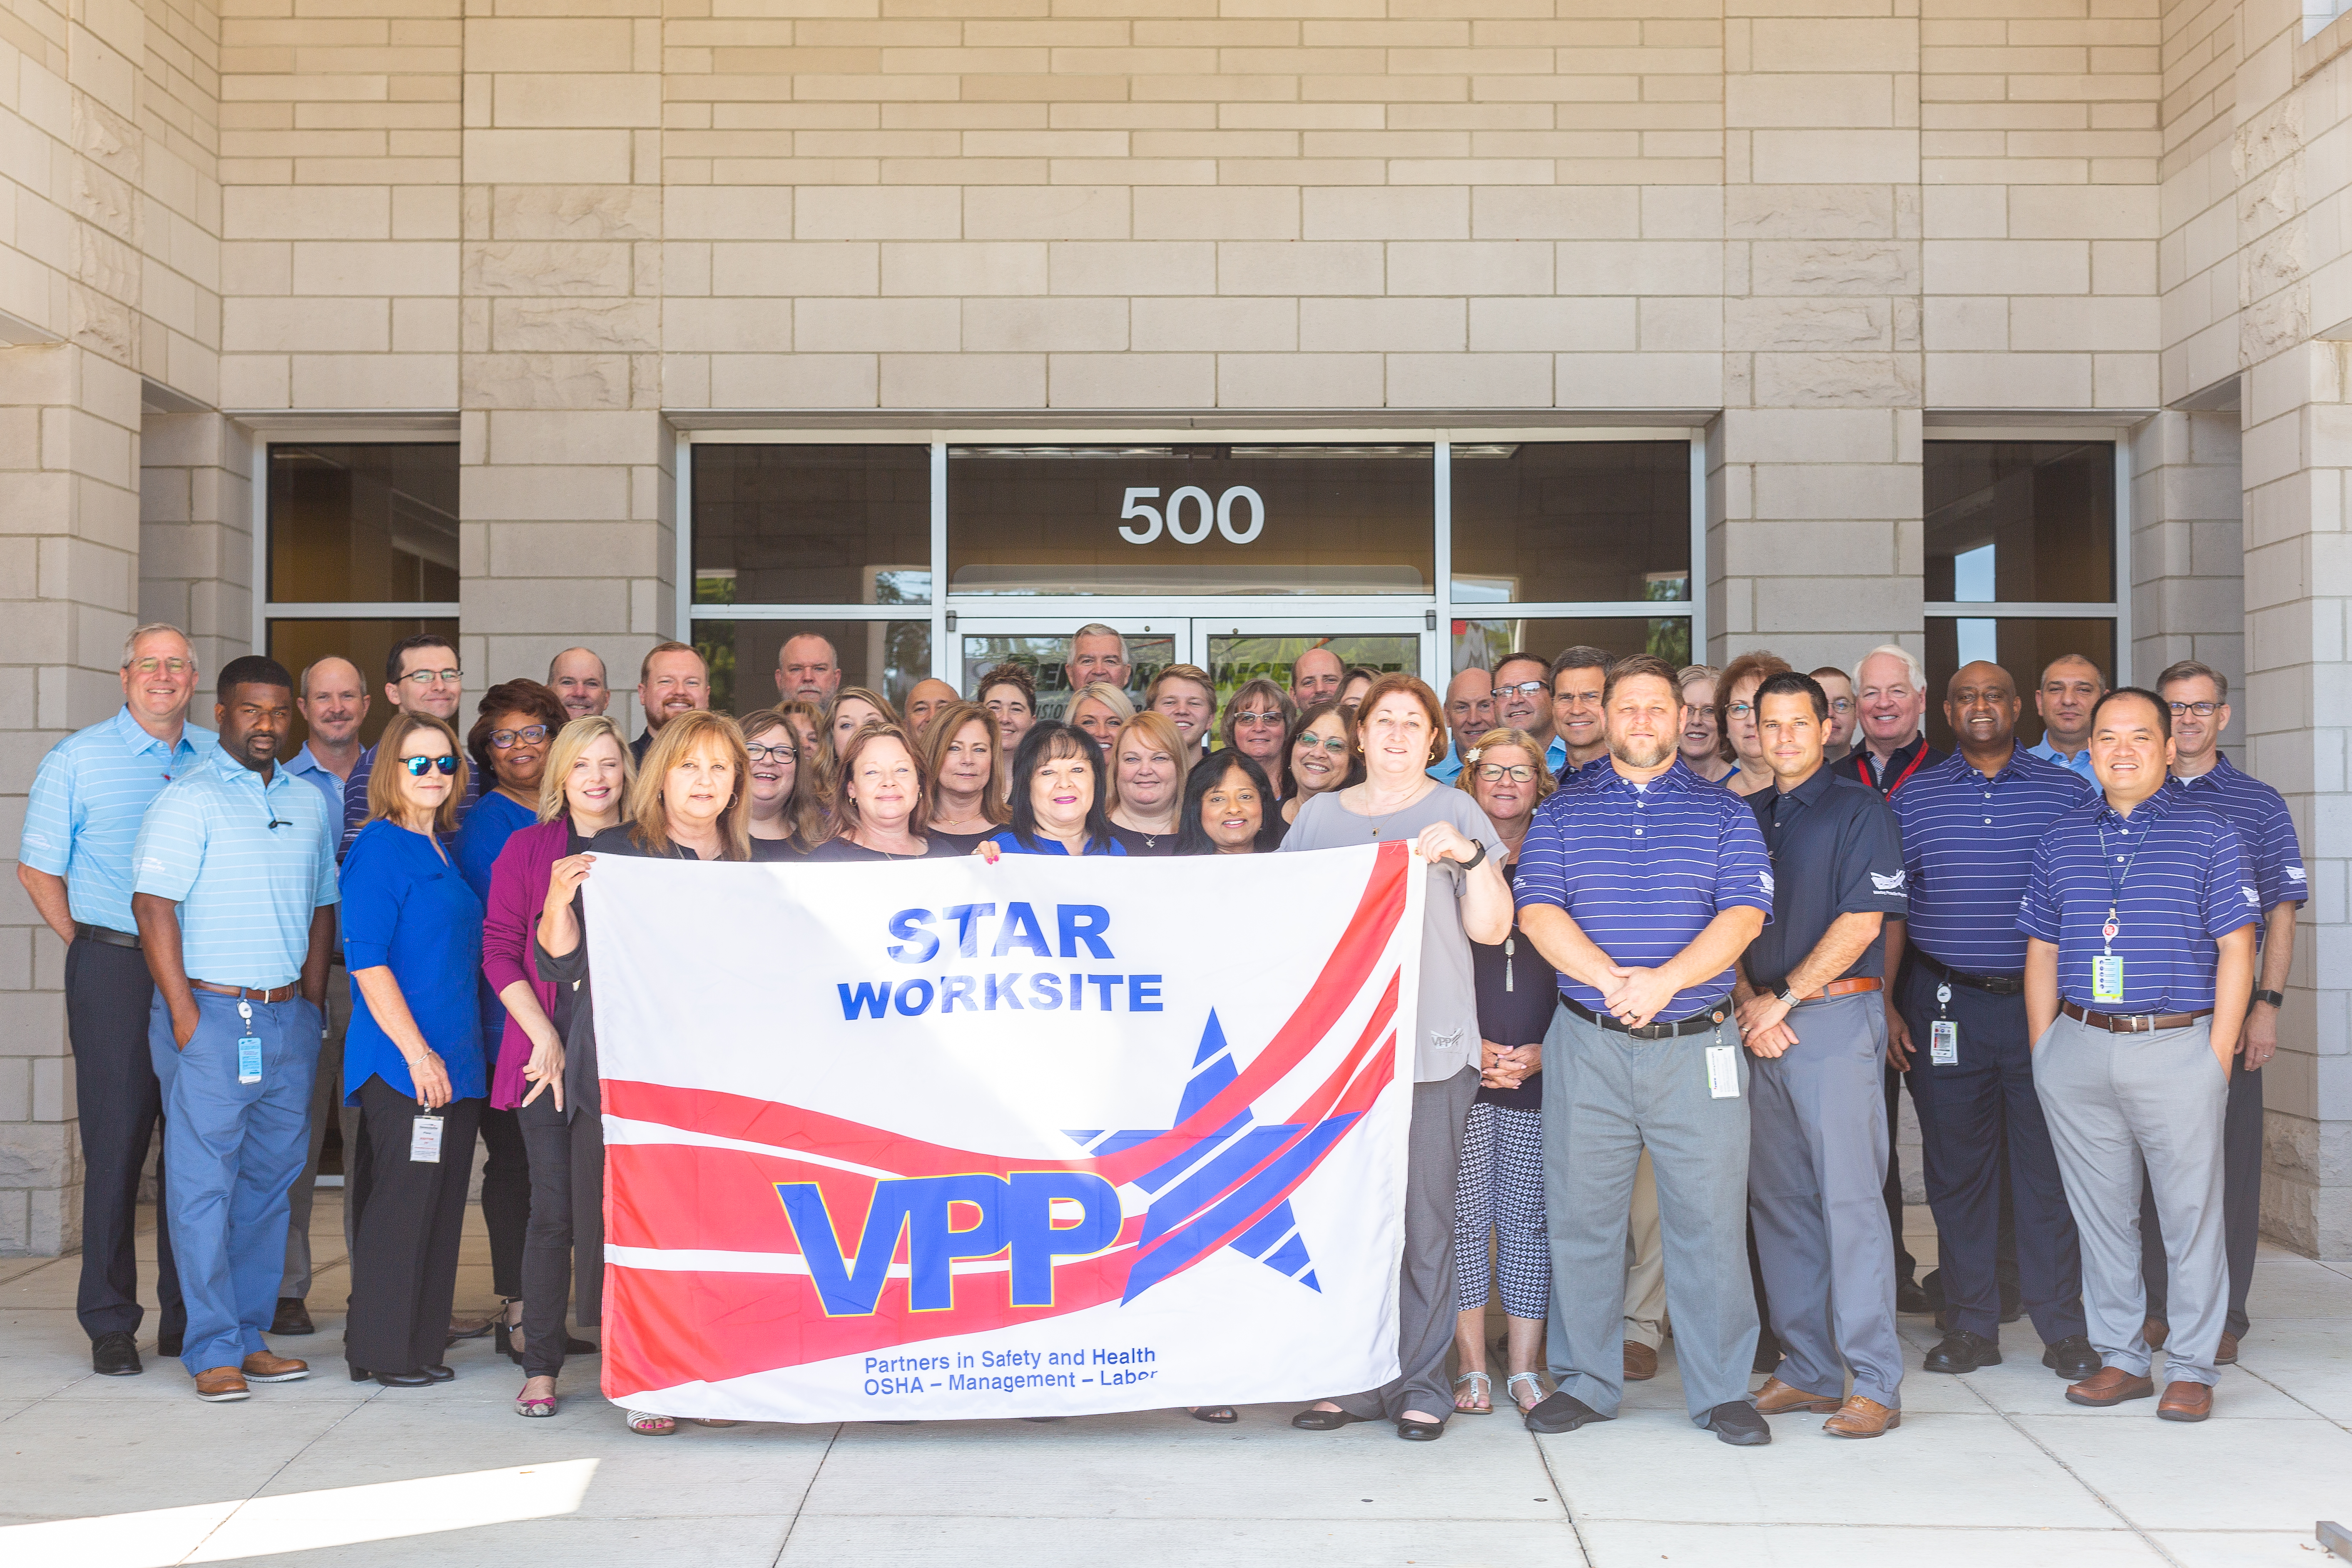 Chevron Phillips Chemical's Performance Pipe division office in Plano earns VPP Star status